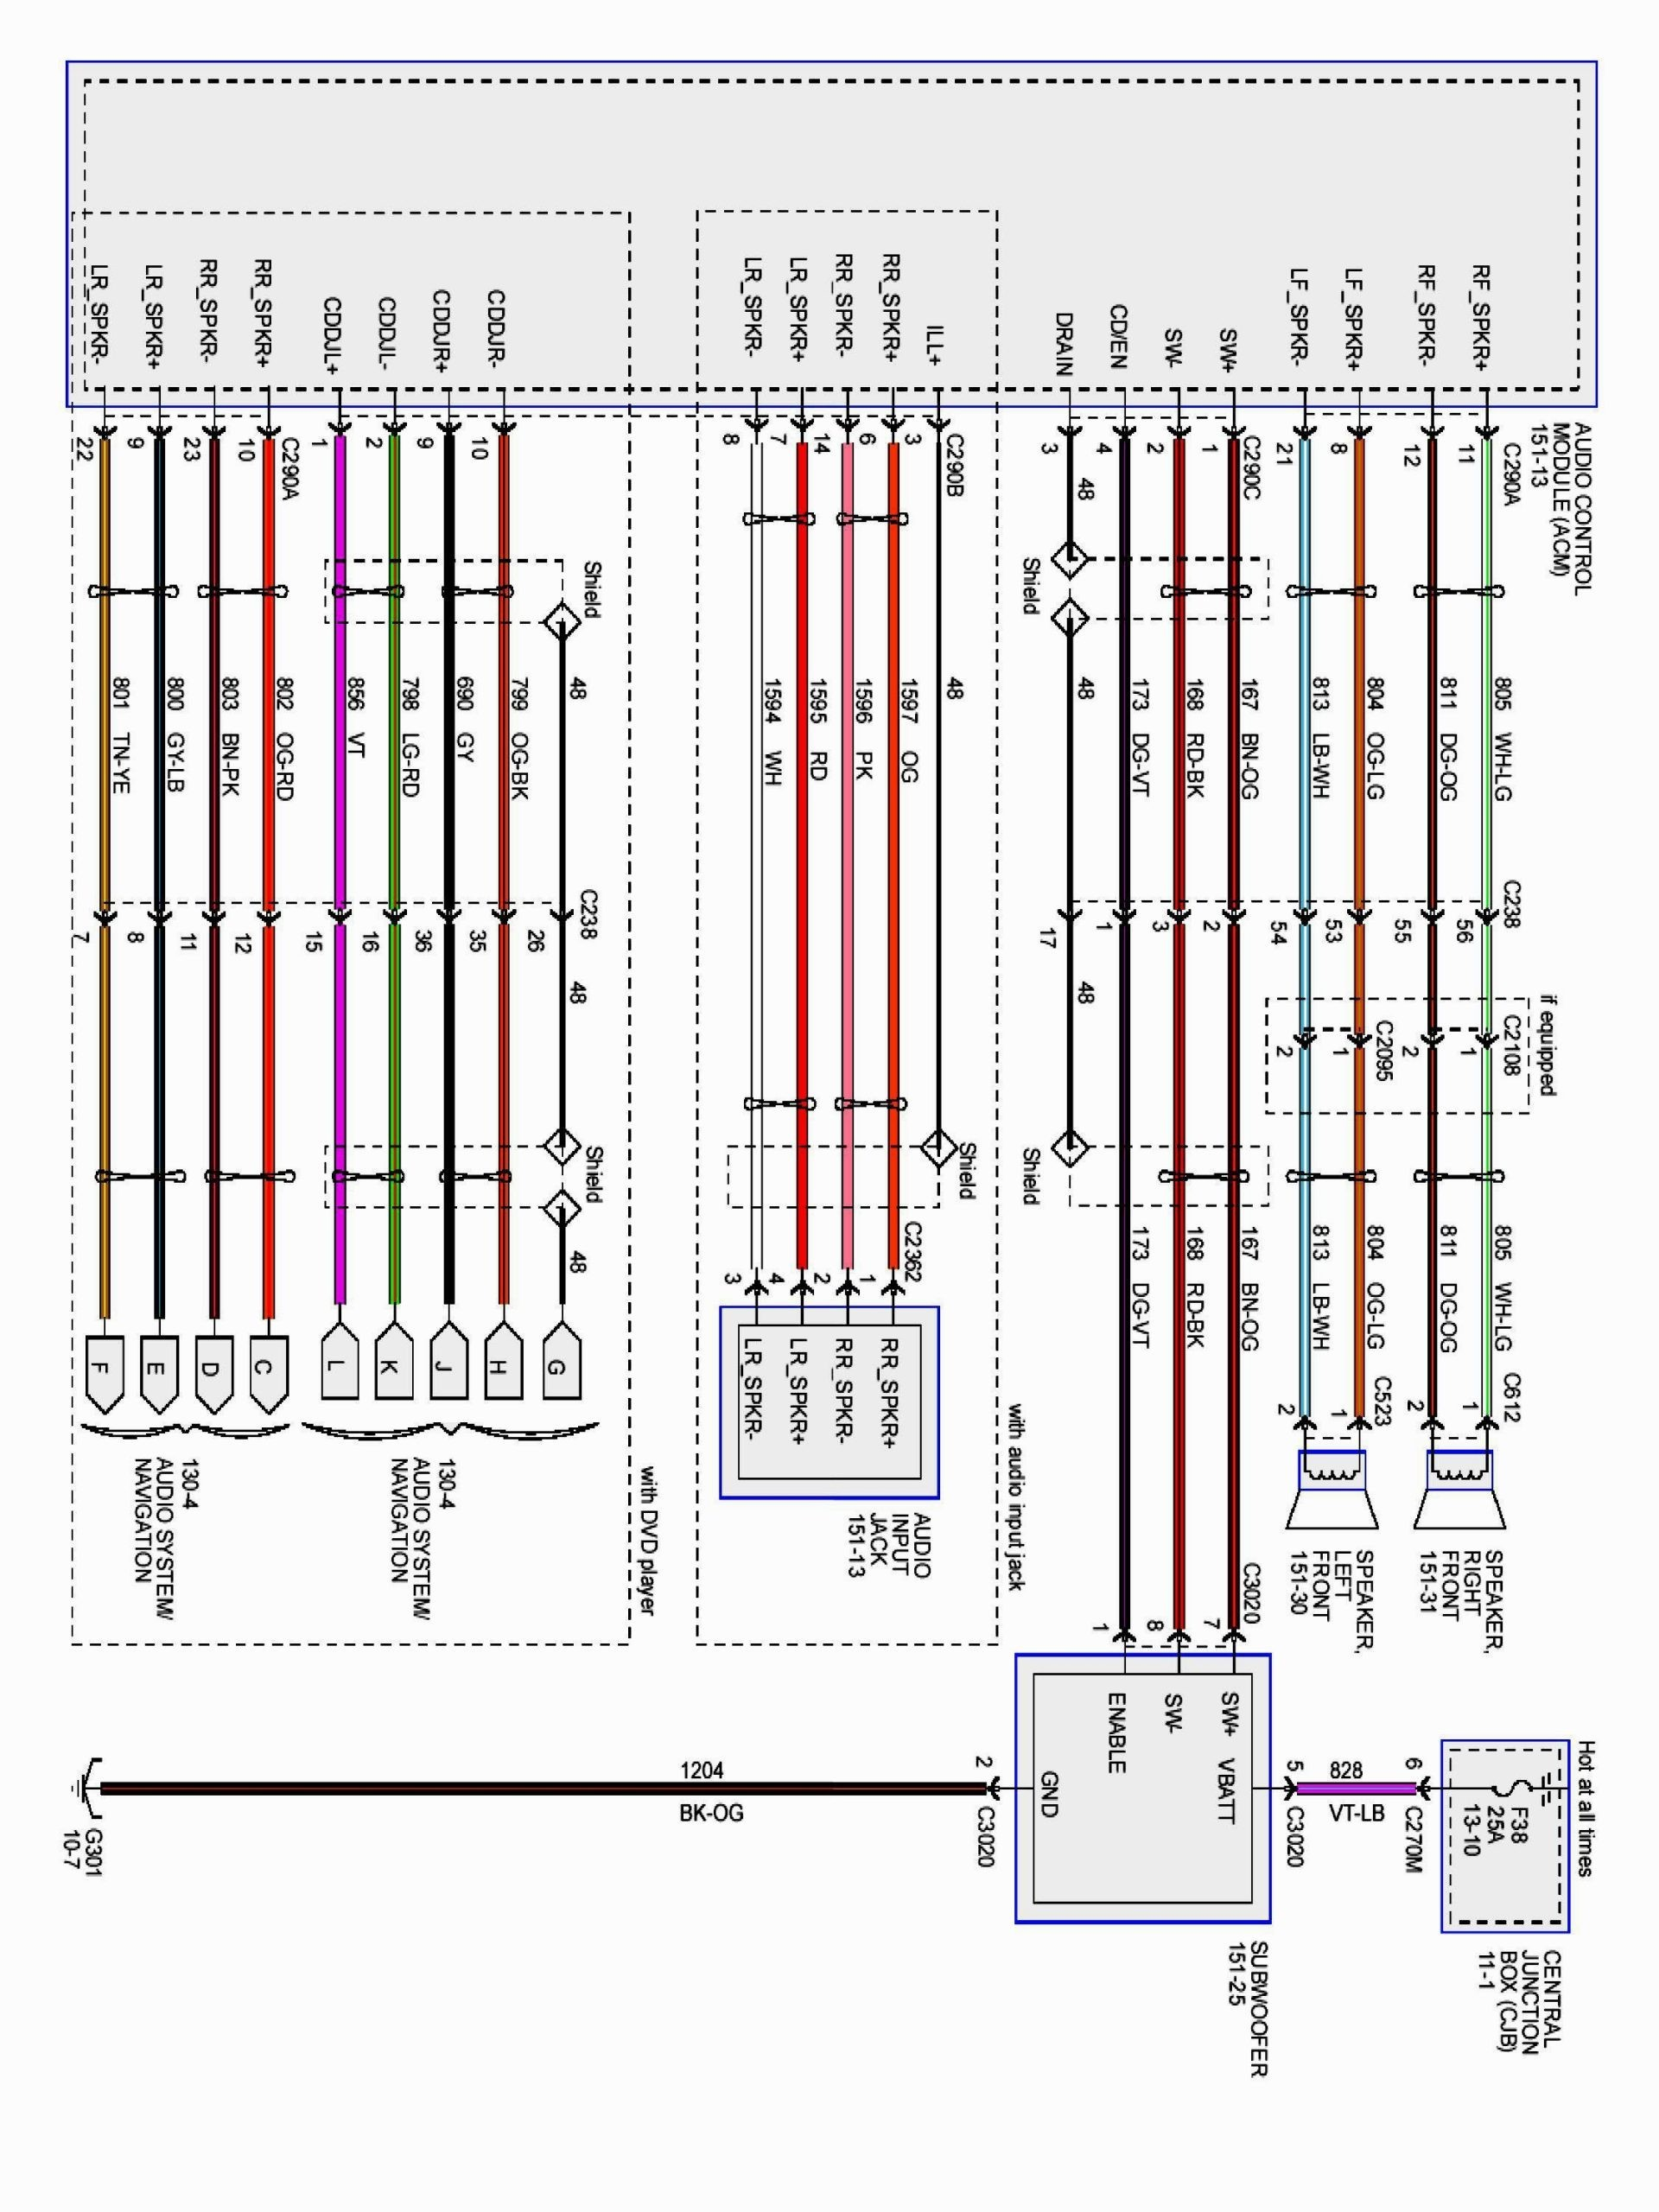 [TVPR_3874]  Vz Wiring Diagram | Wiring Diagram | Vt Stereo Wiring Diagram |  | Wiring Diagram - AutoScout24